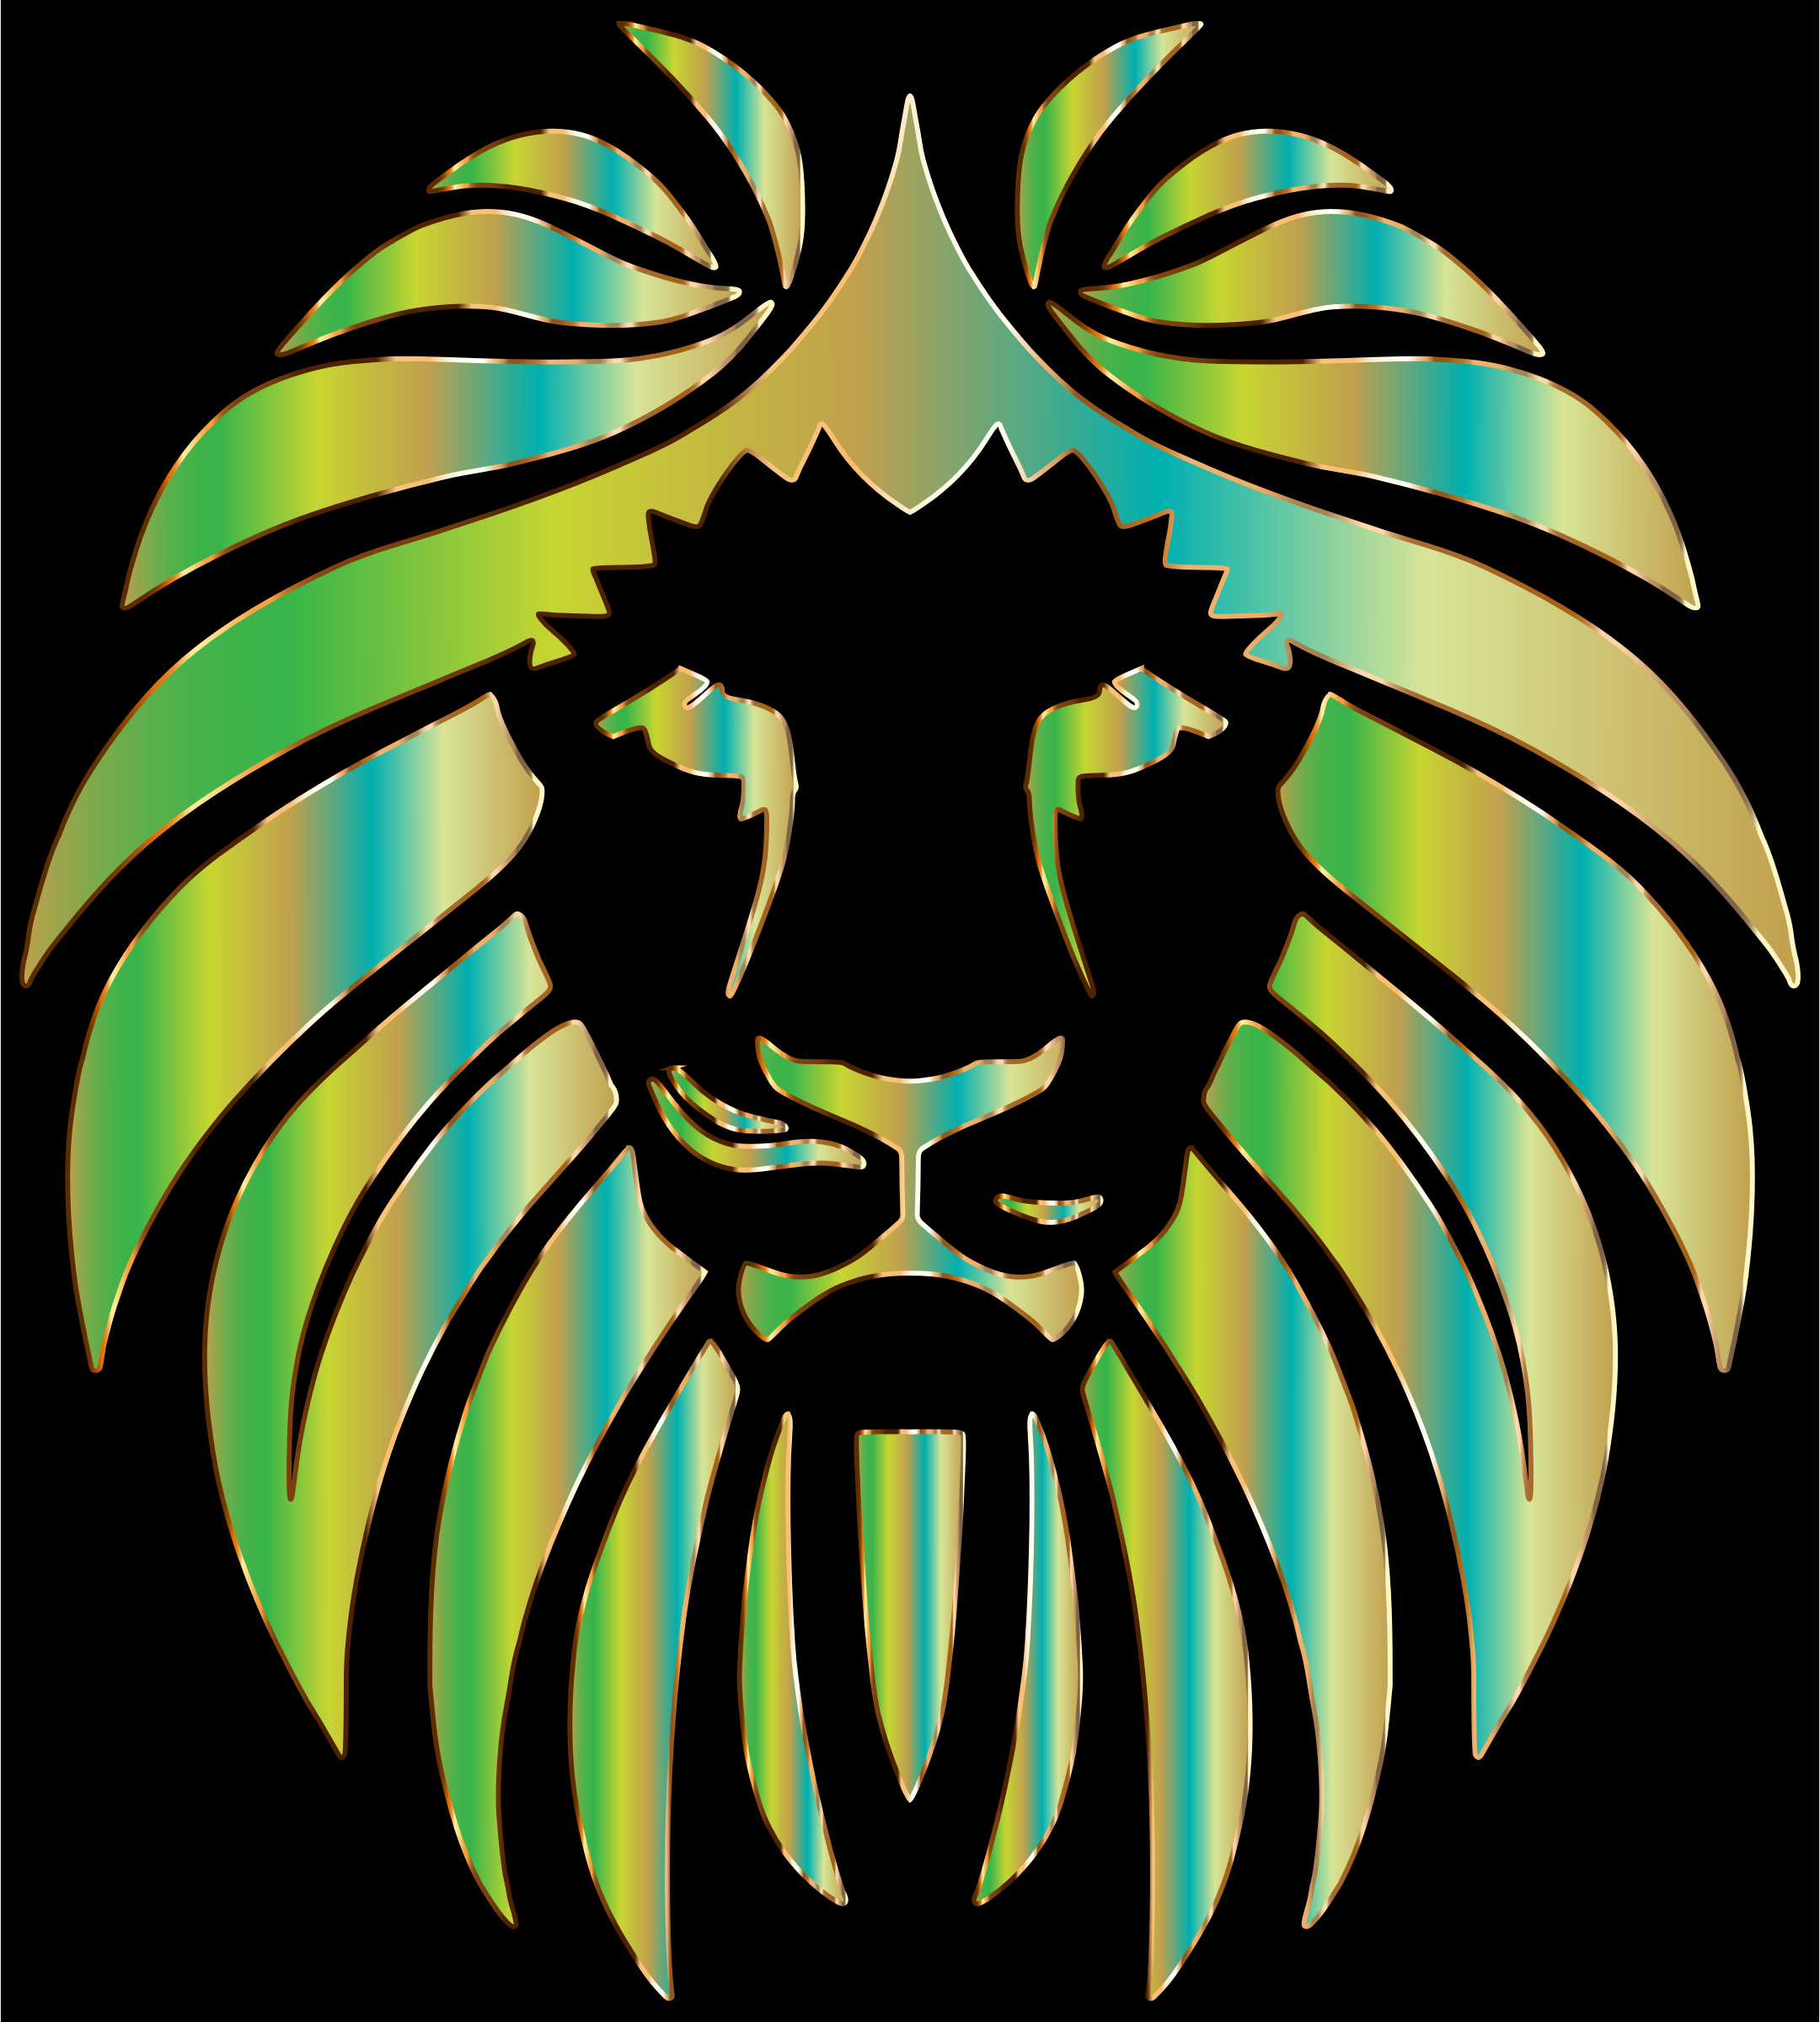 Prismatic Lion 7 by GDJ